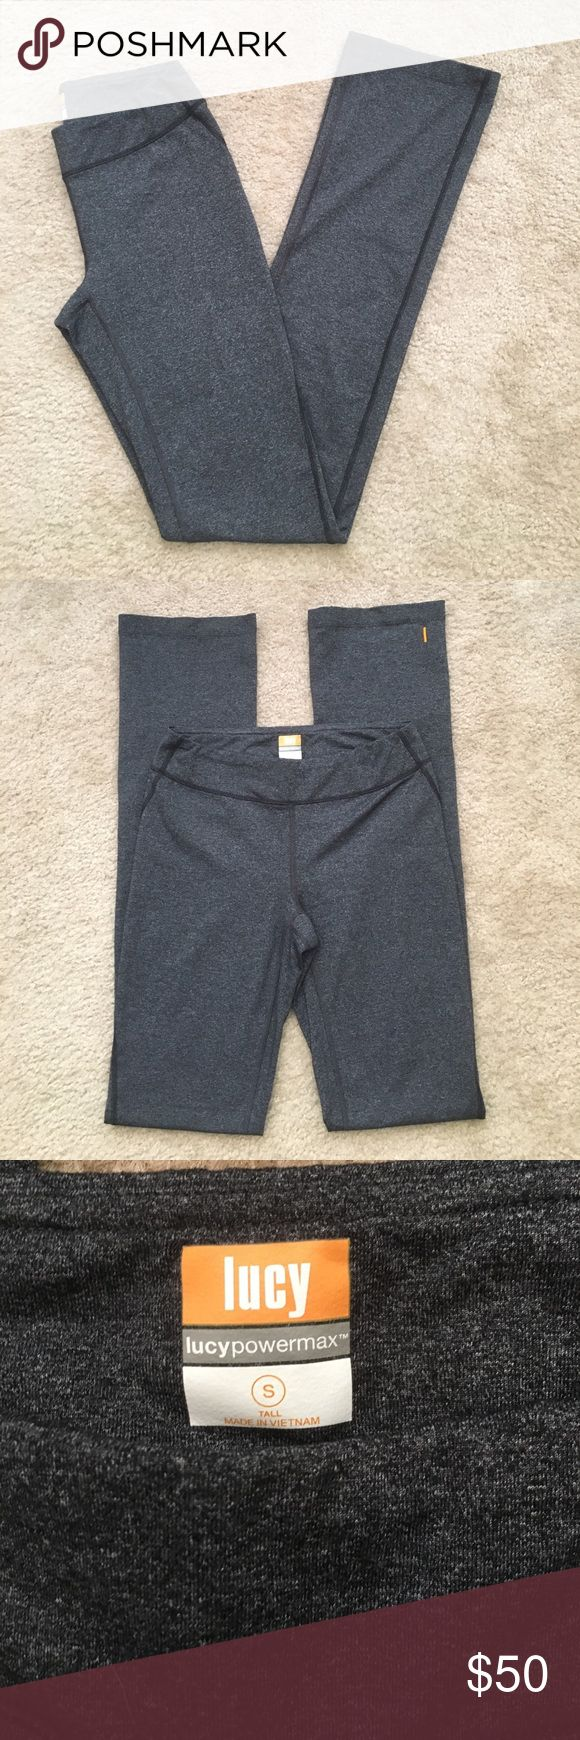 "🌸May sale!🌸Lucy yoga pants Dark grey straight leg powermax yoga pants from Lucy. Small interior pocket on left side of the waist. Size is small tall- 35"" inseam Lucy Pants"